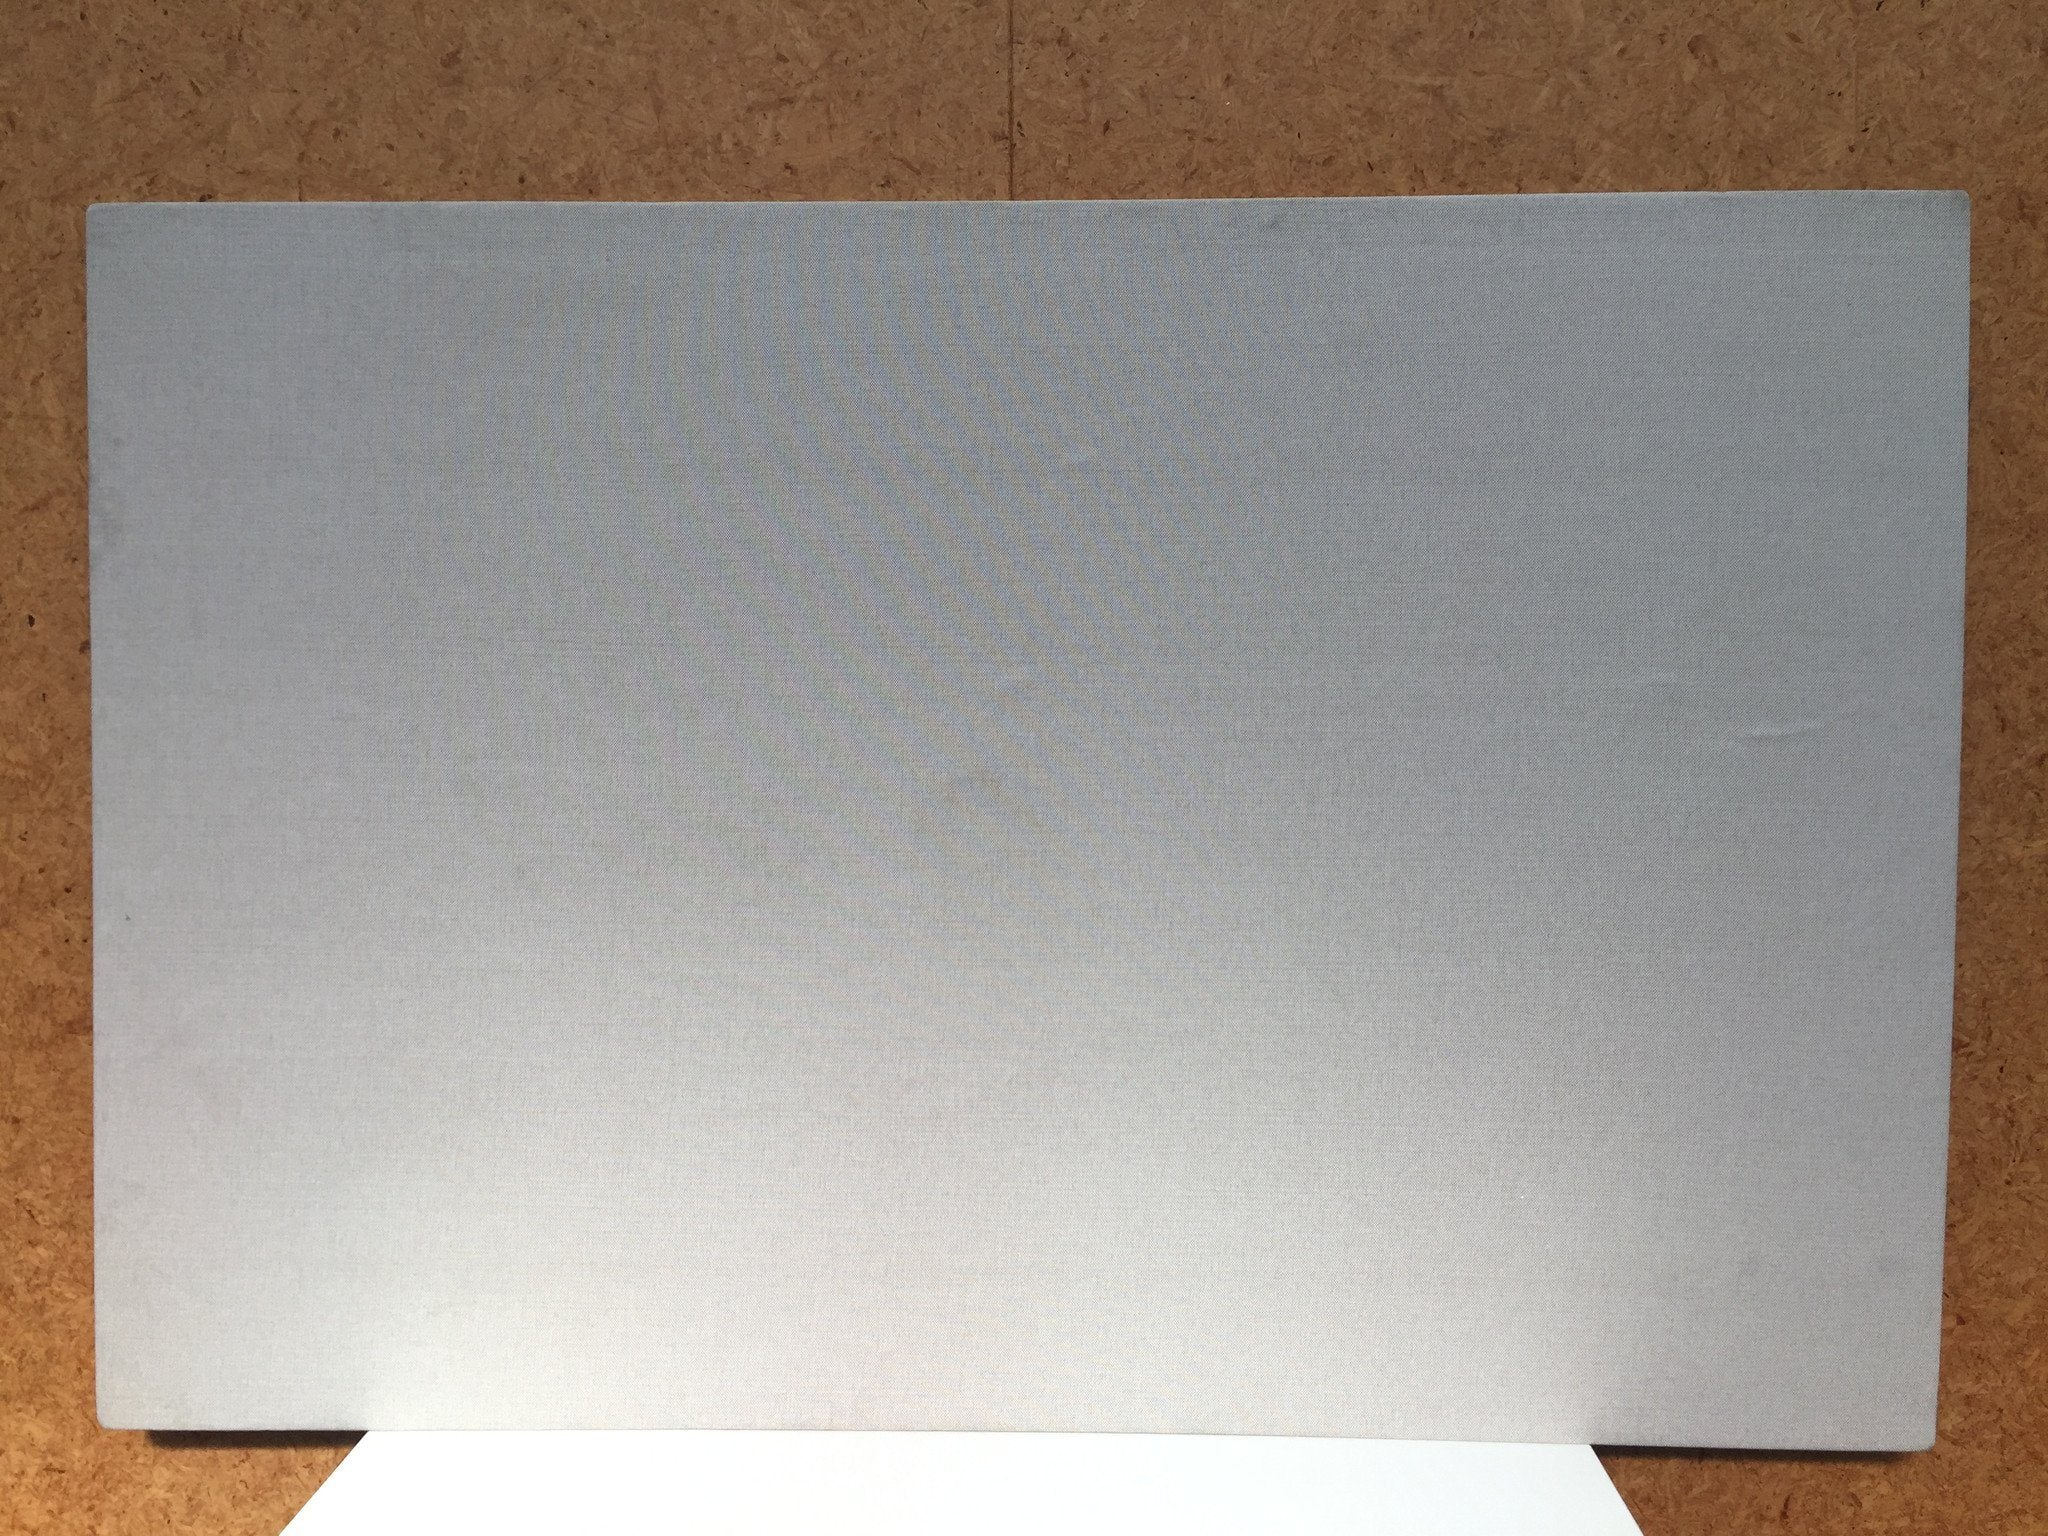 Supplier Clearance Wrapped Edge Noticeboard 1200 X 1800